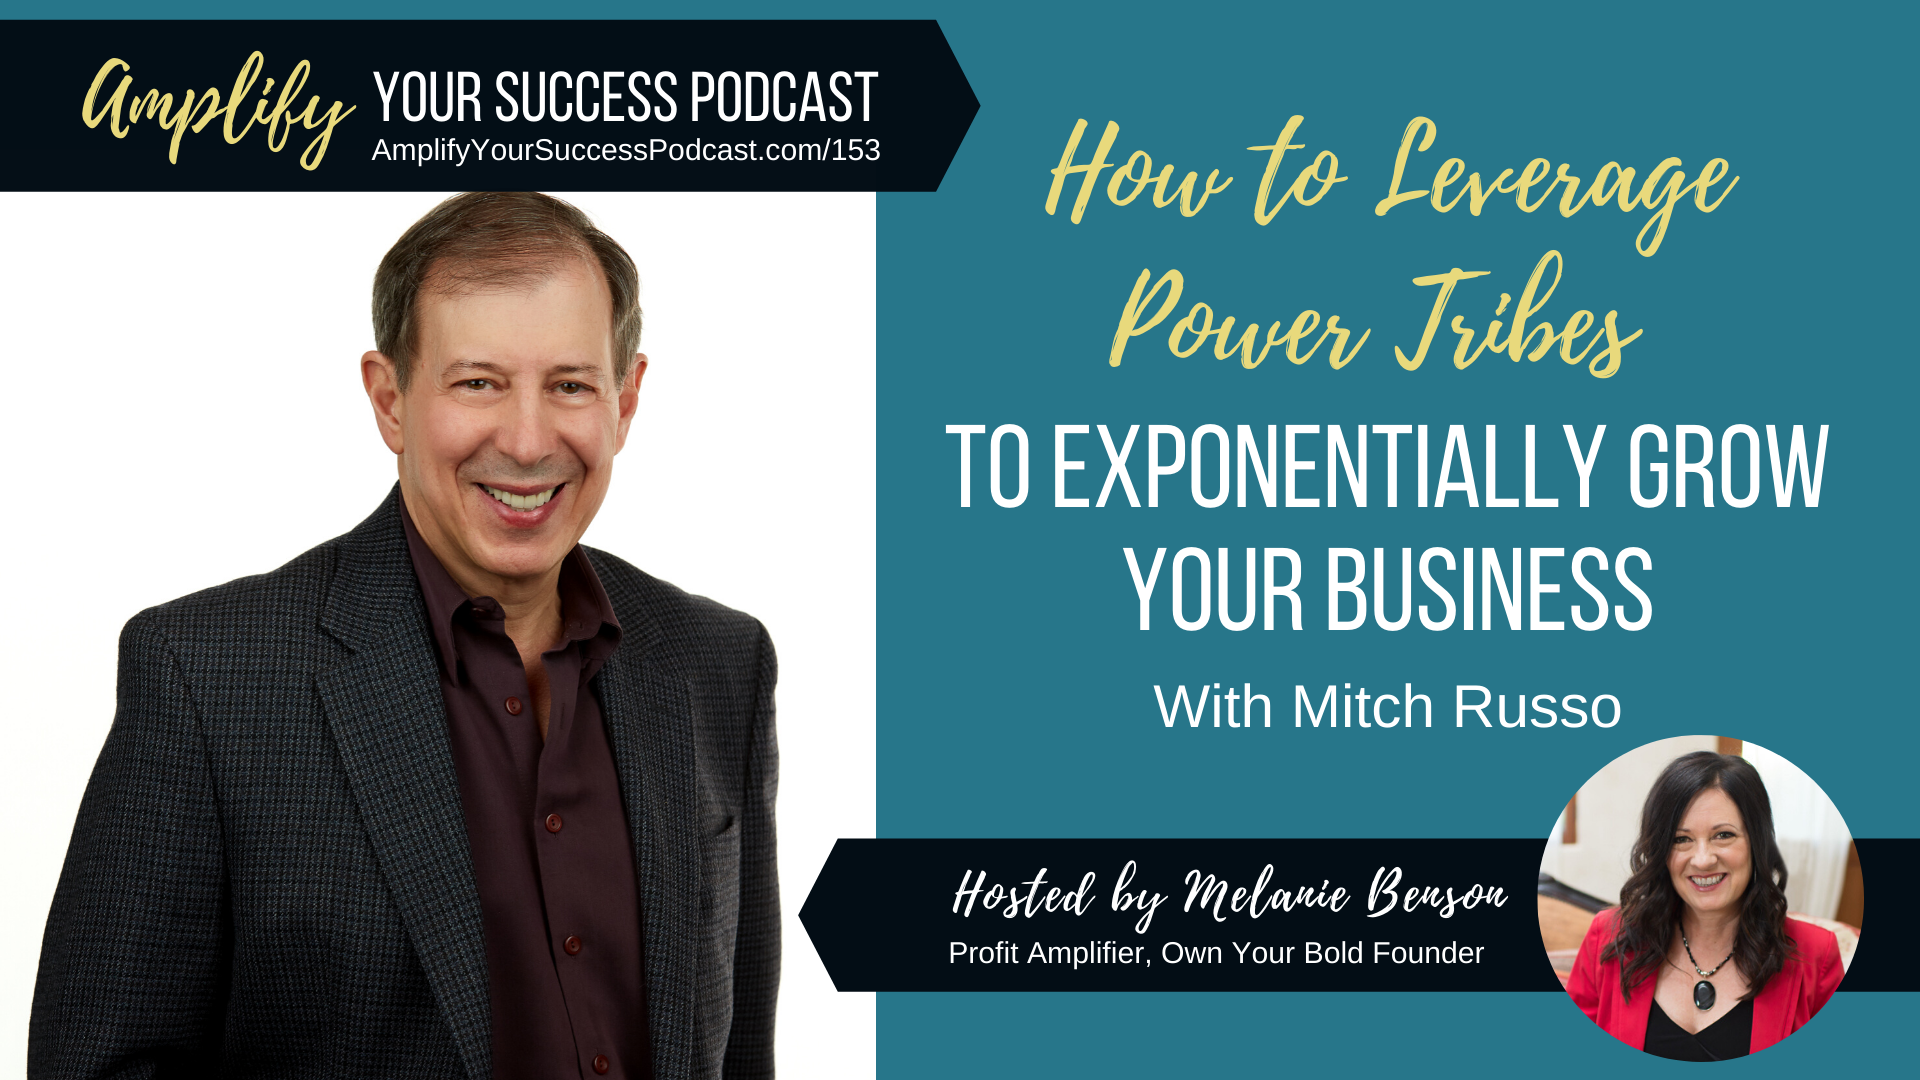 How Power Tribes Exponentially Grow Your Business with Mitch Russo